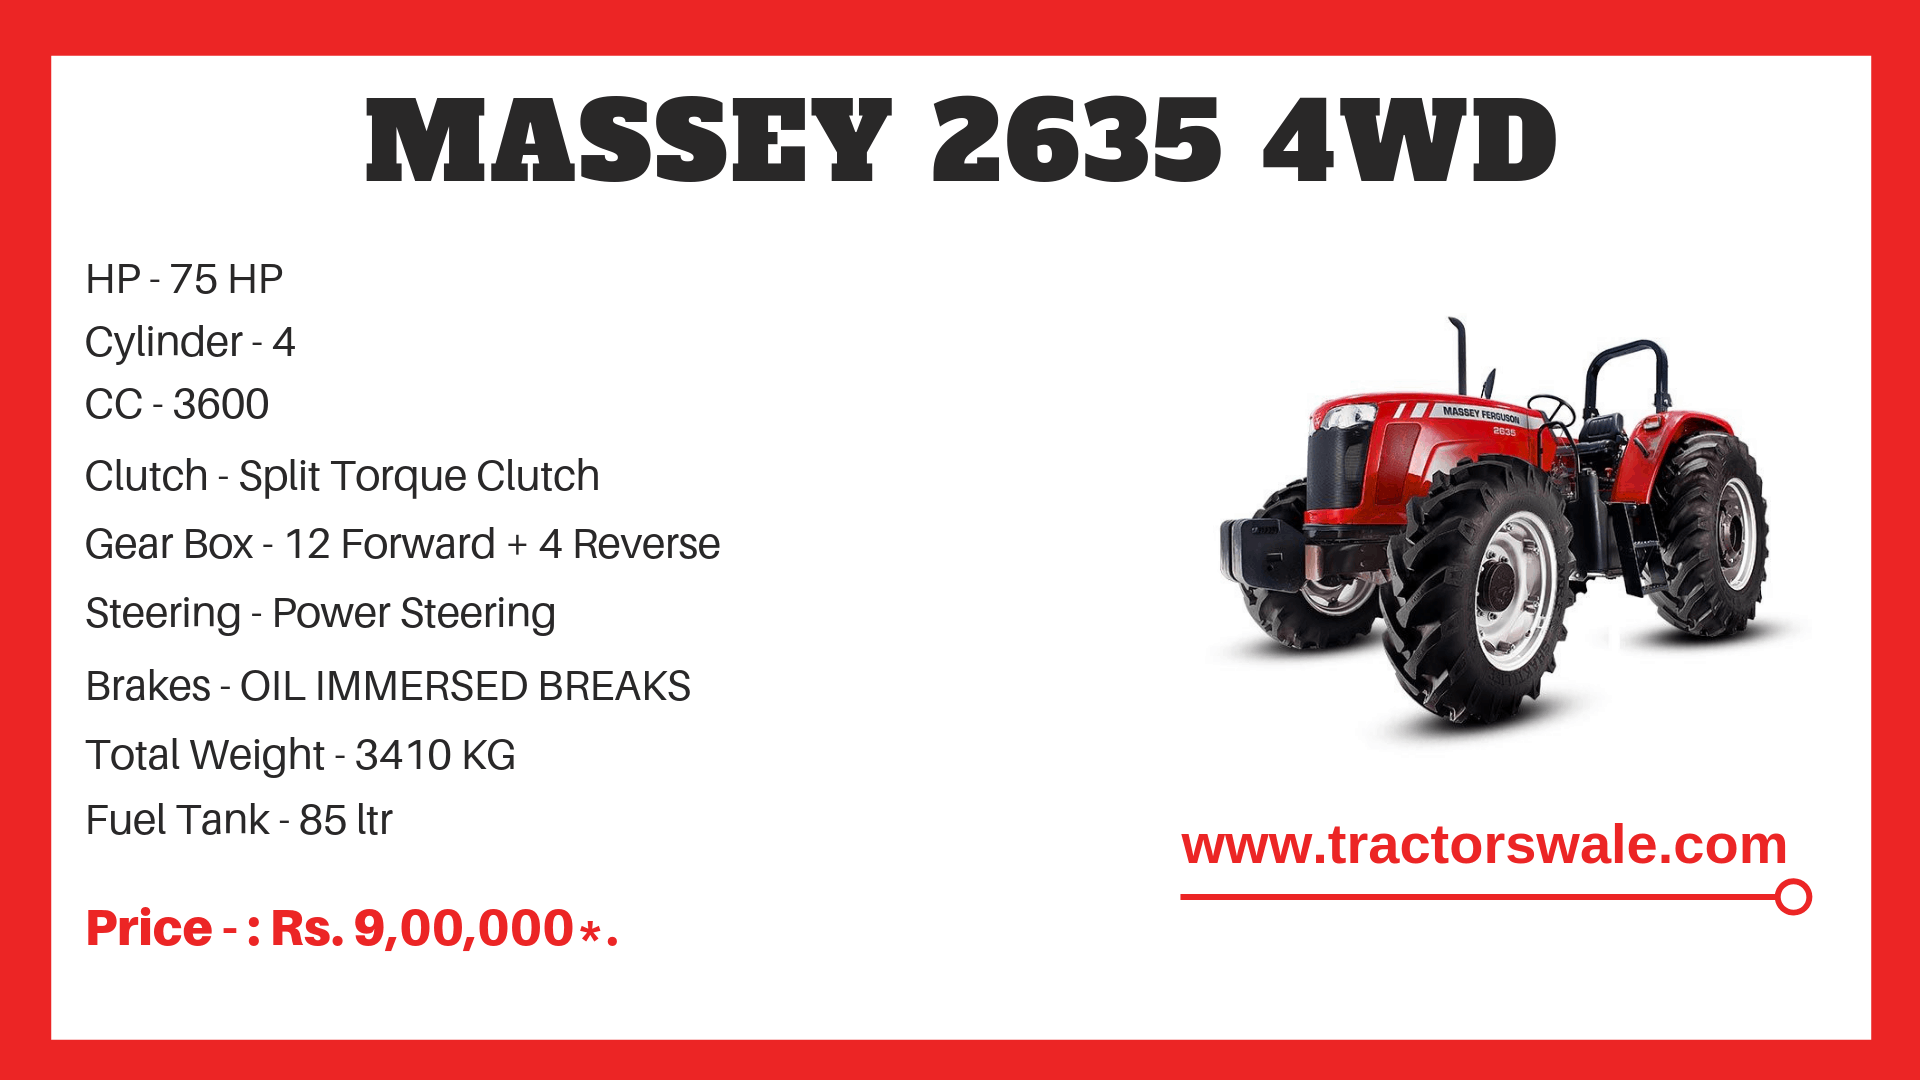 Specifications Of Massey Ferguson 2635 4WD Tractor